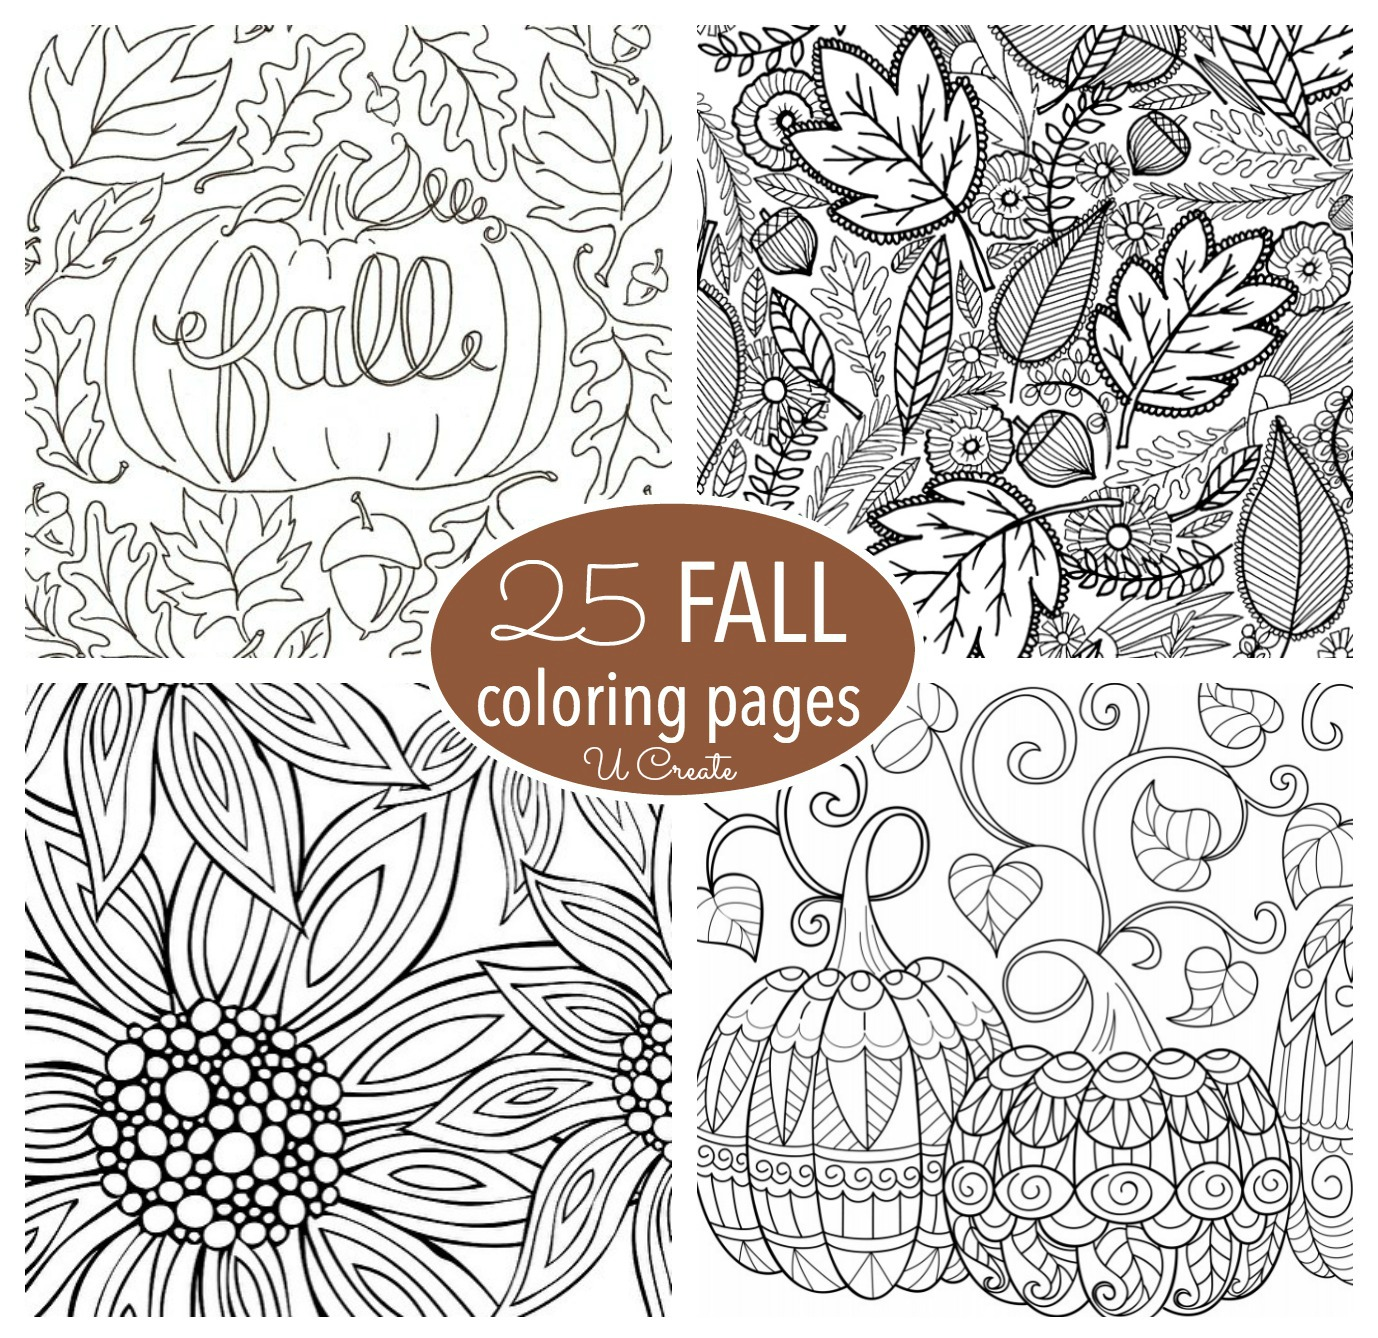 adult coloring pages fall Free Fall Adult Coloring Pages   U Create adult coloring pages fall